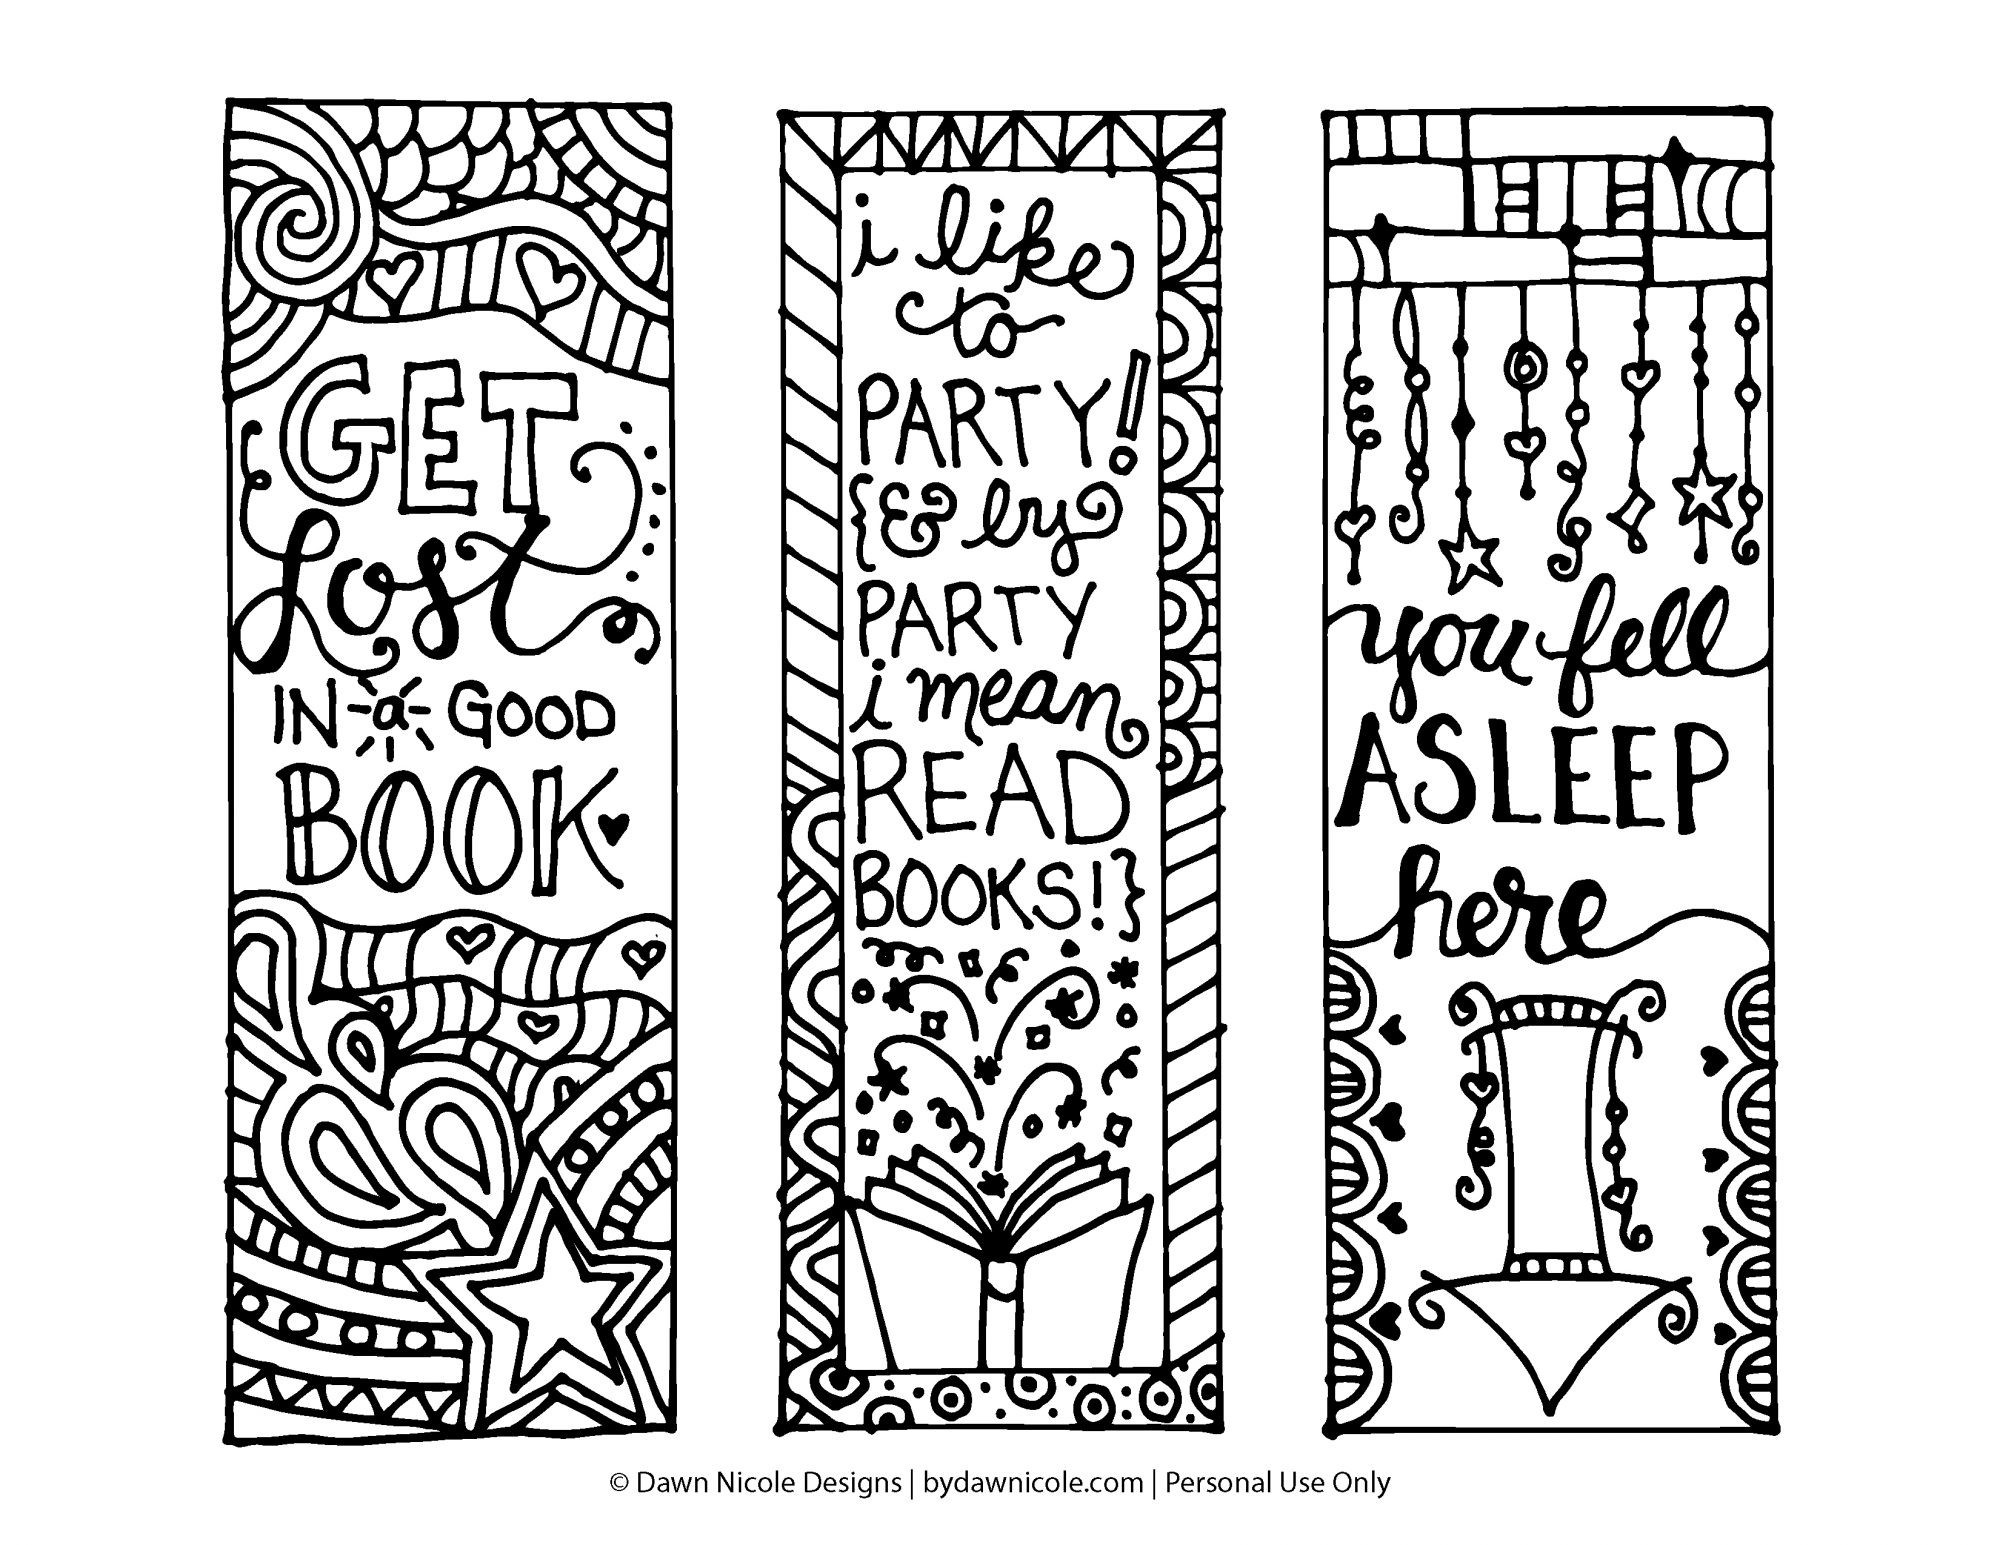 Bookmark Designs To Print Black And White | World Of Example within Cool Bookmarks To Print Black And White 29582